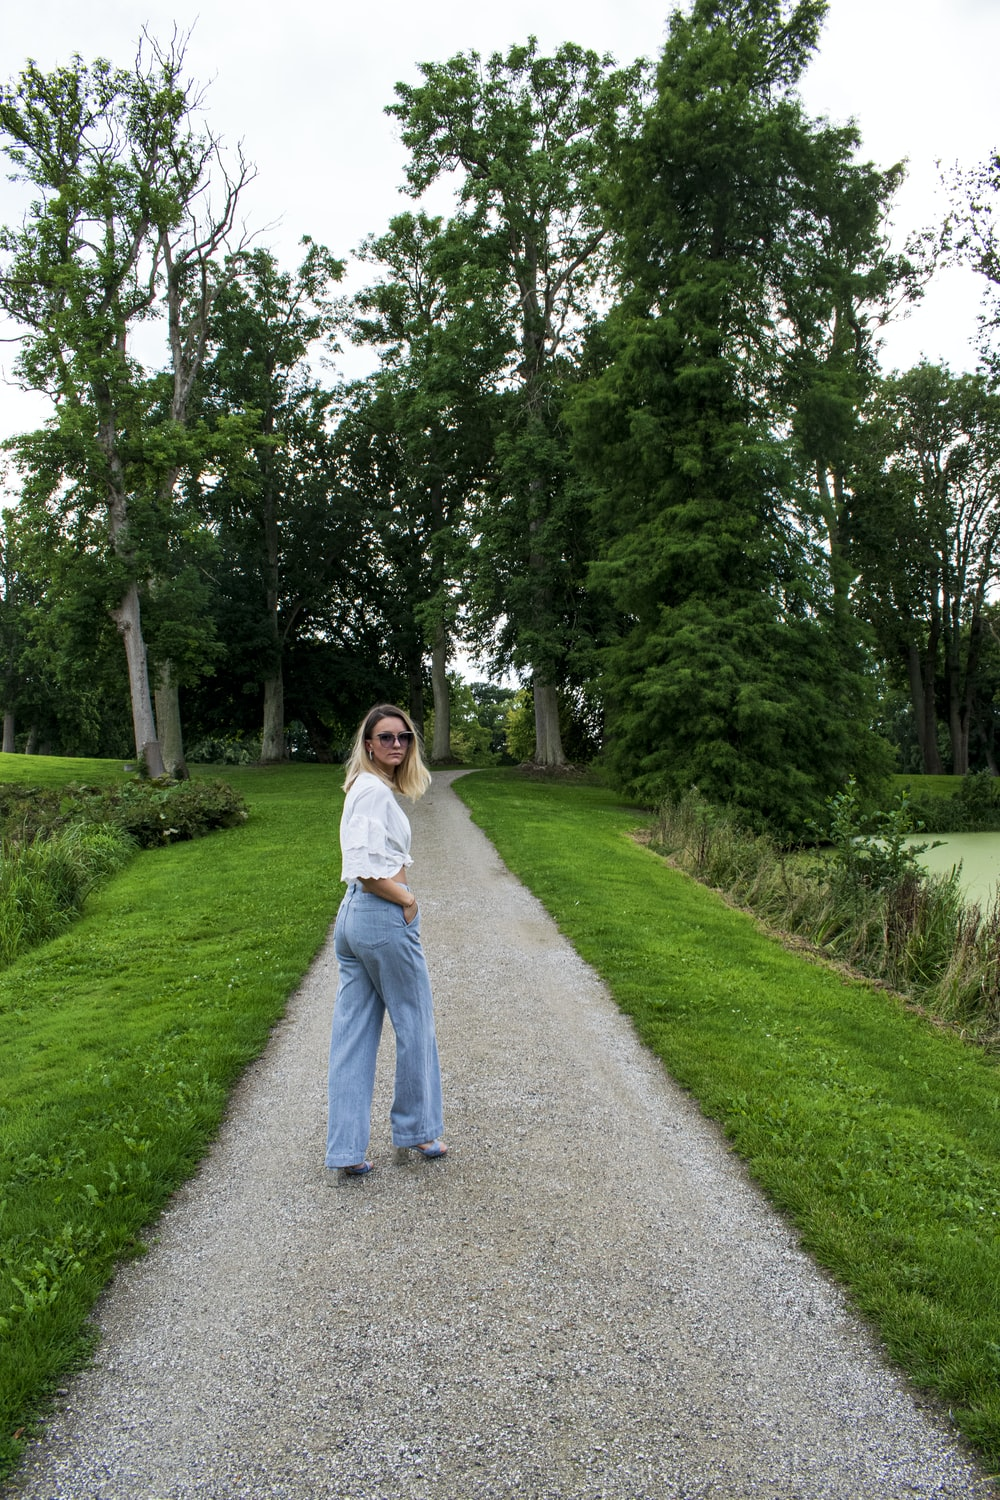 woman in white long sleeve shirt and blue denim jeans standing on gray asphalt road during